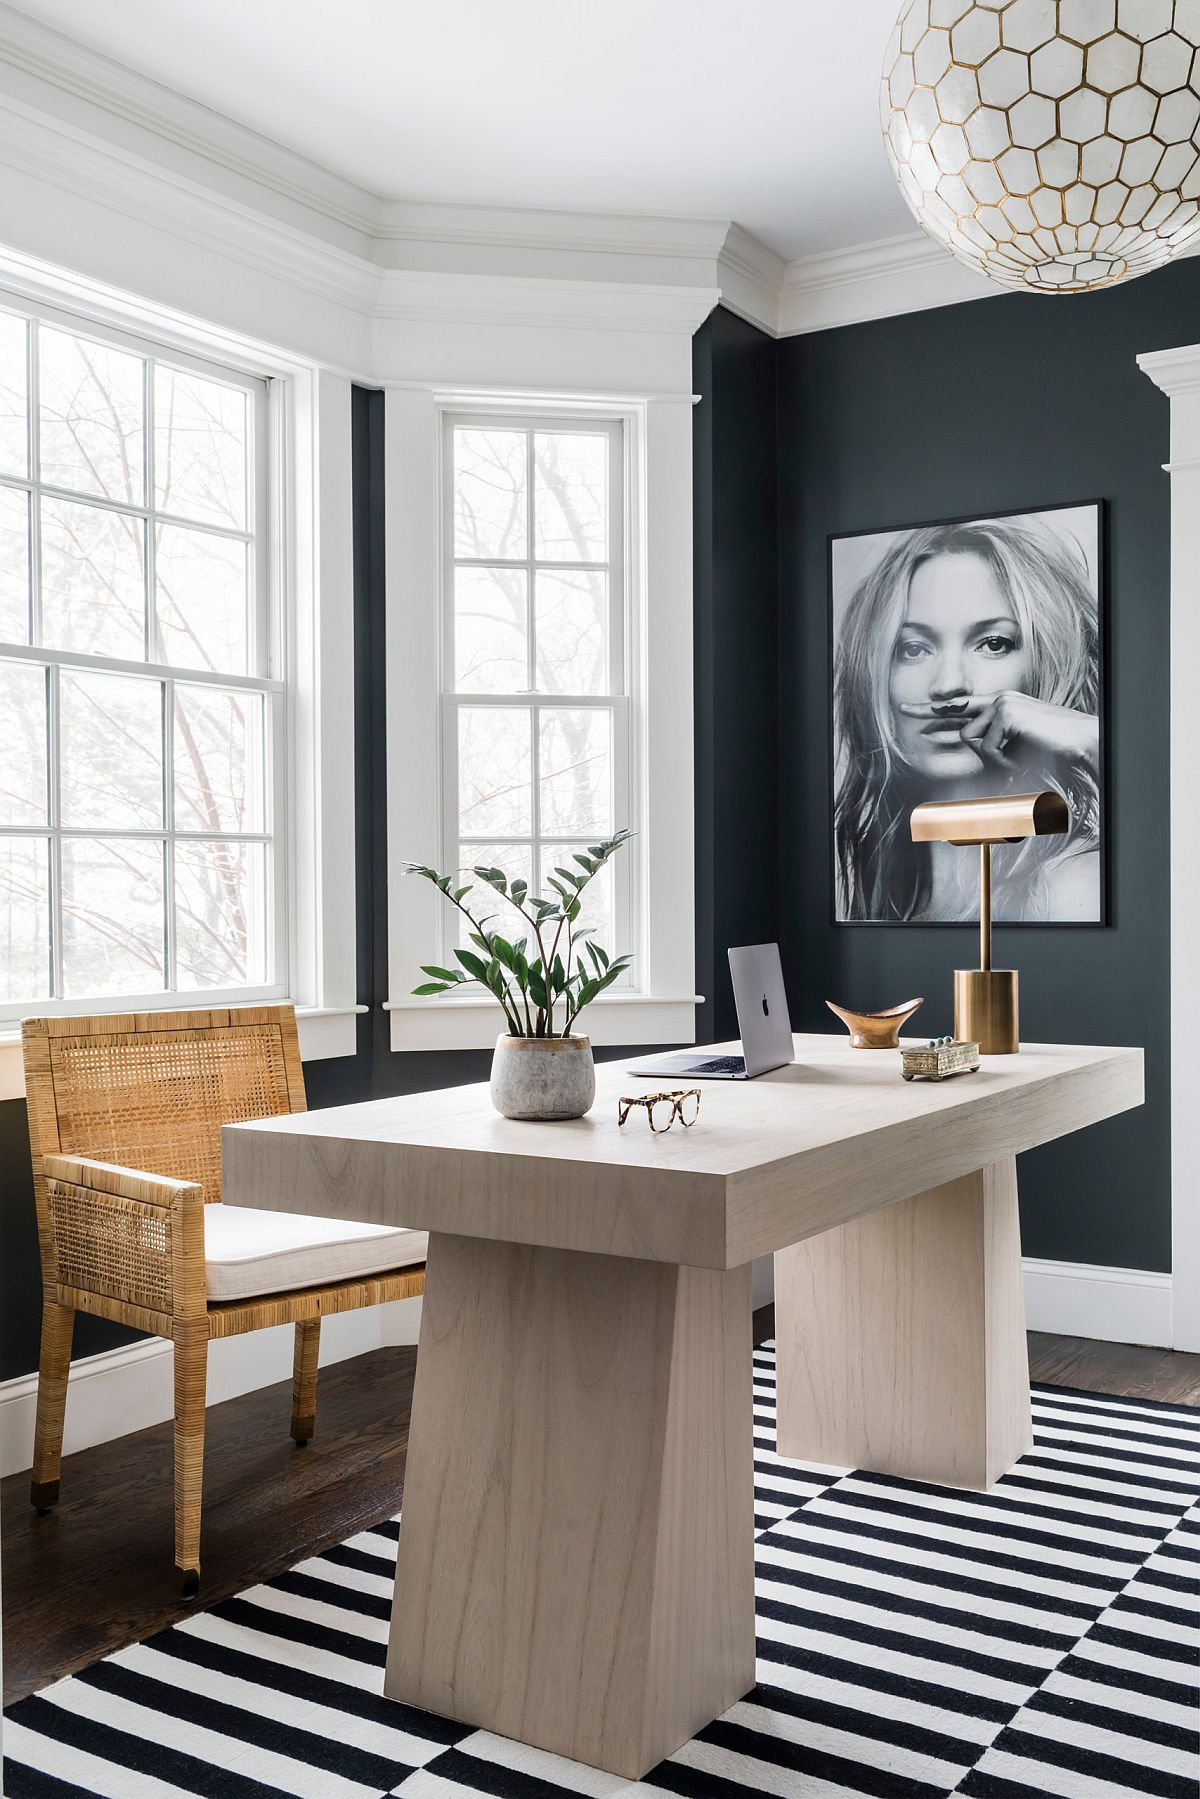 Fabulous contemporary home office in gray with black and white striped carpet and stylish design